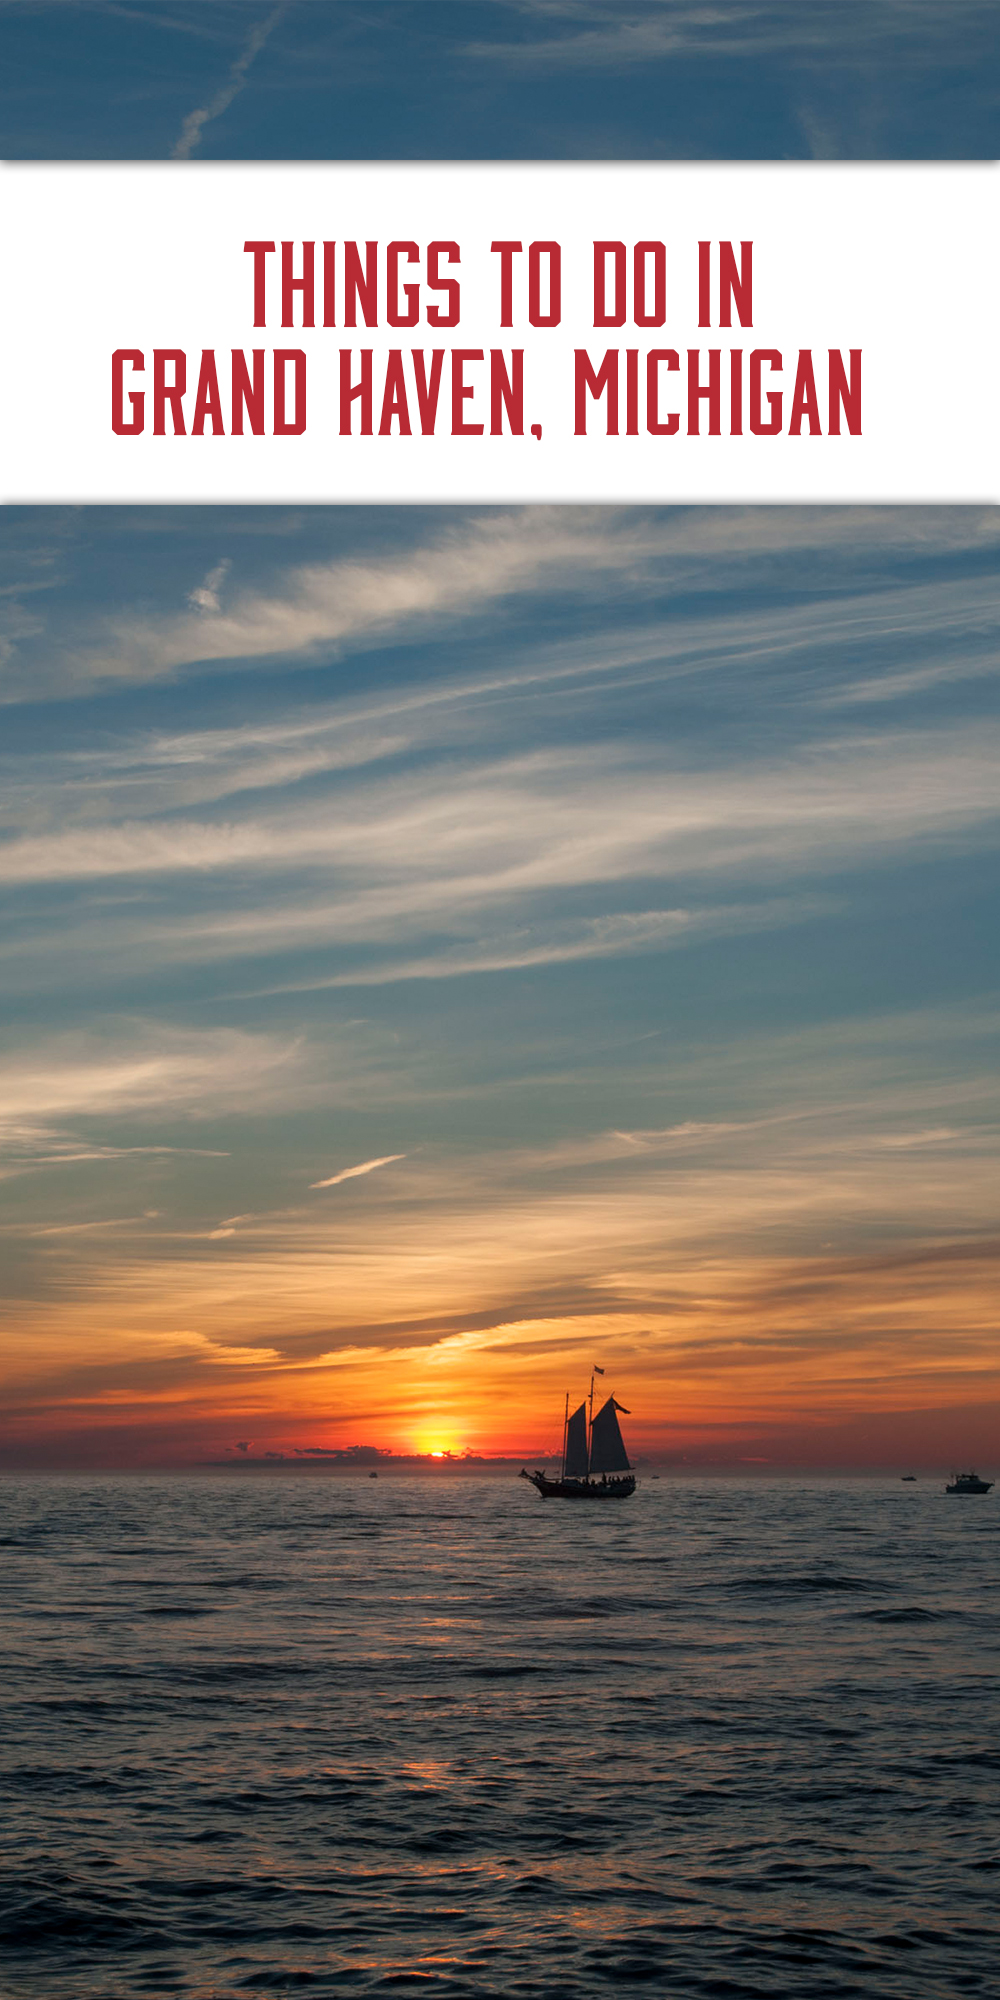 A guide on the best things to do in Grand Haven, Michigan. #GrandHaven #Michigan